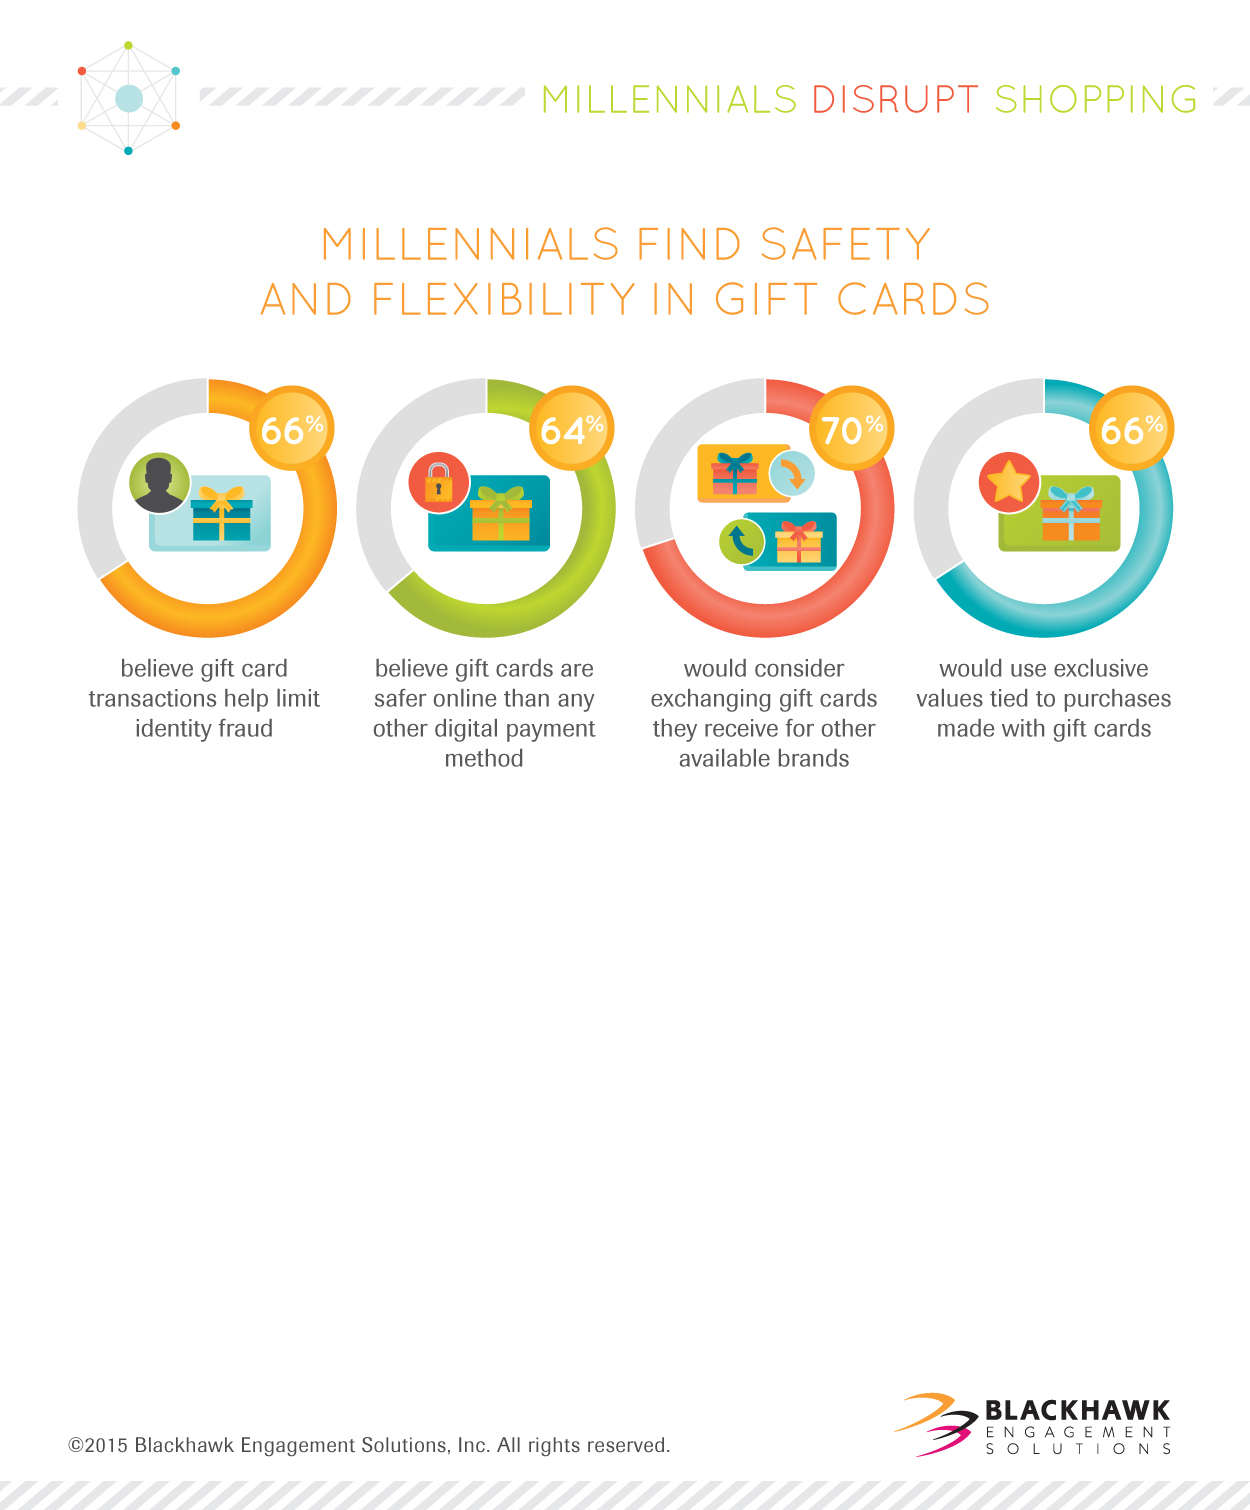 Millennials Find Safety and Flexibility In Gift Cards